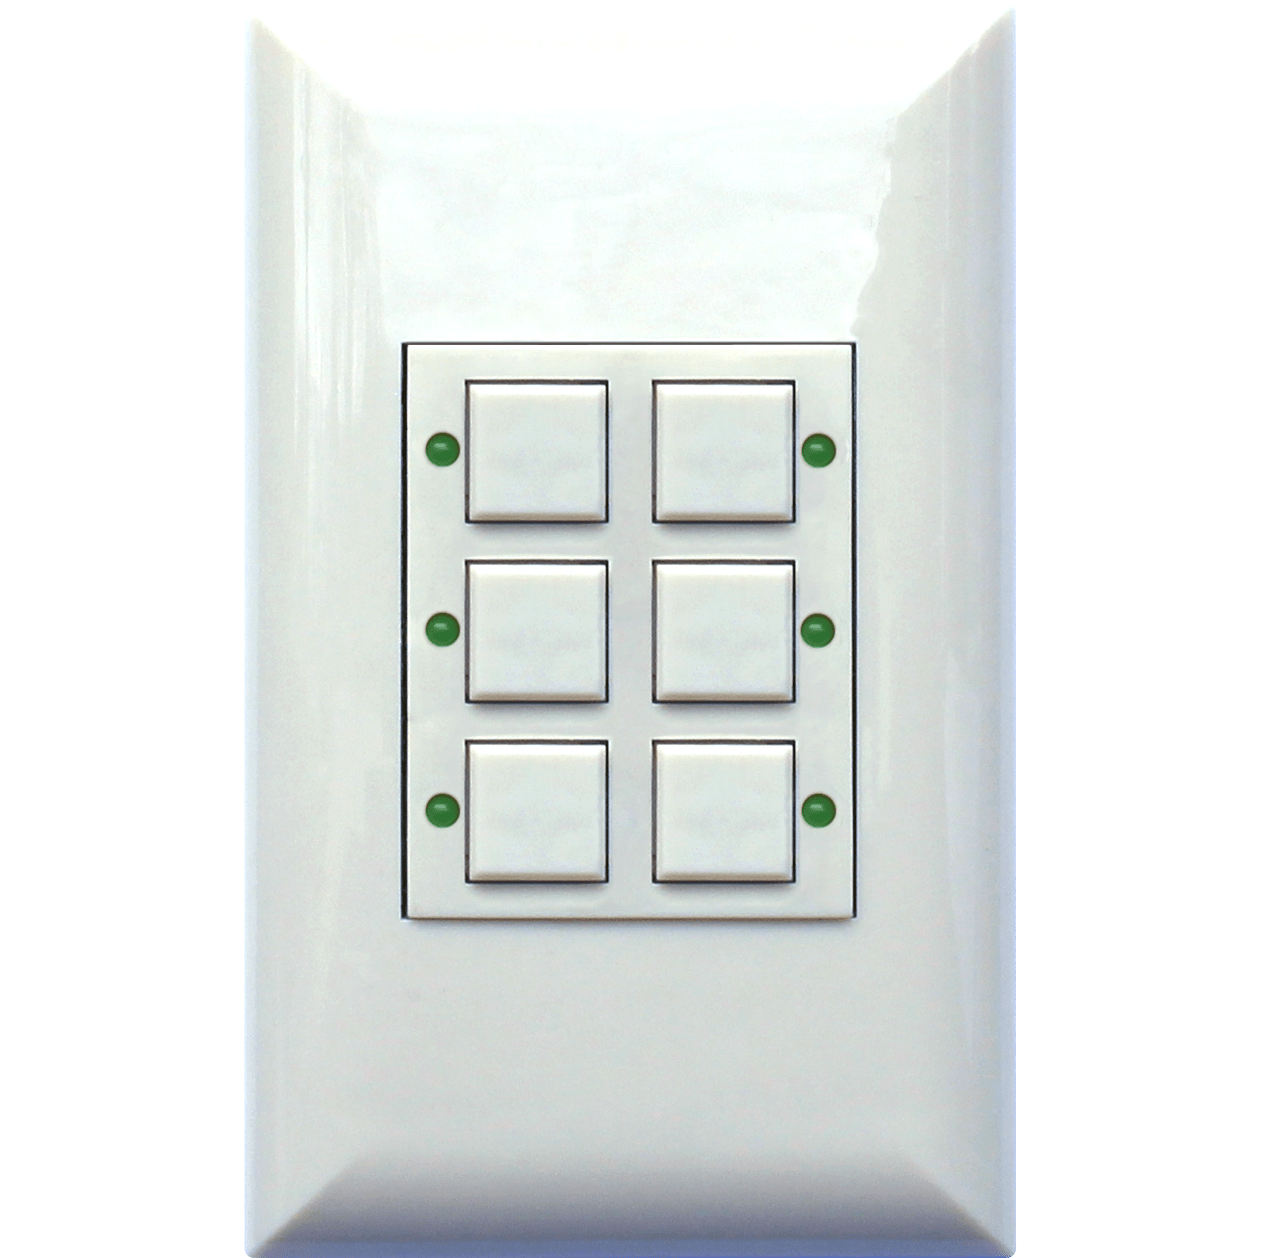 hight resolution of classic series wall switch touch plate lighting controls touch plate lighting controls